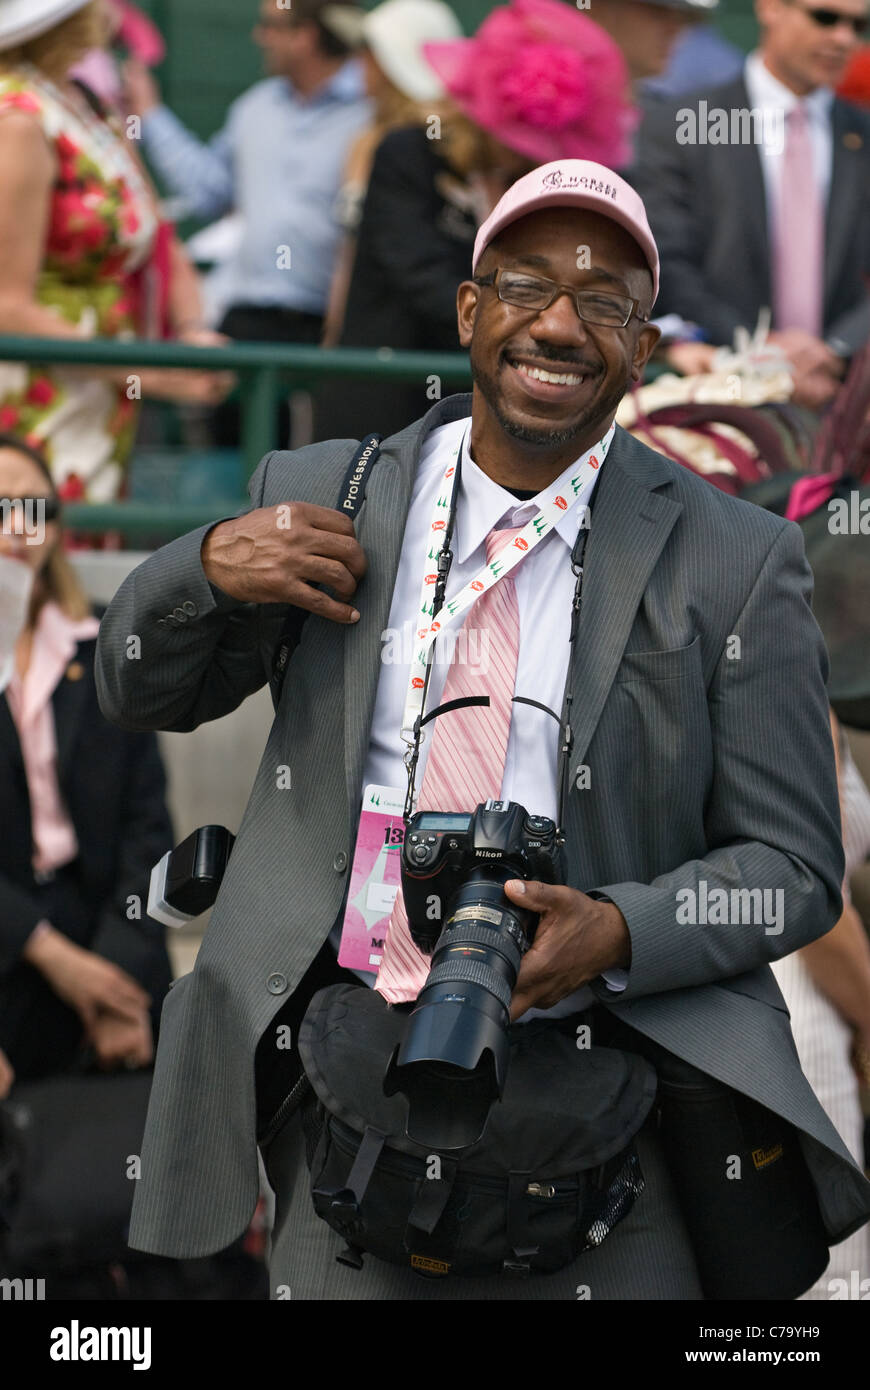 Professional Photographer Marvin Young Shooting Photos at Churchill Downs in Louisville, Kentucky - Stock Image